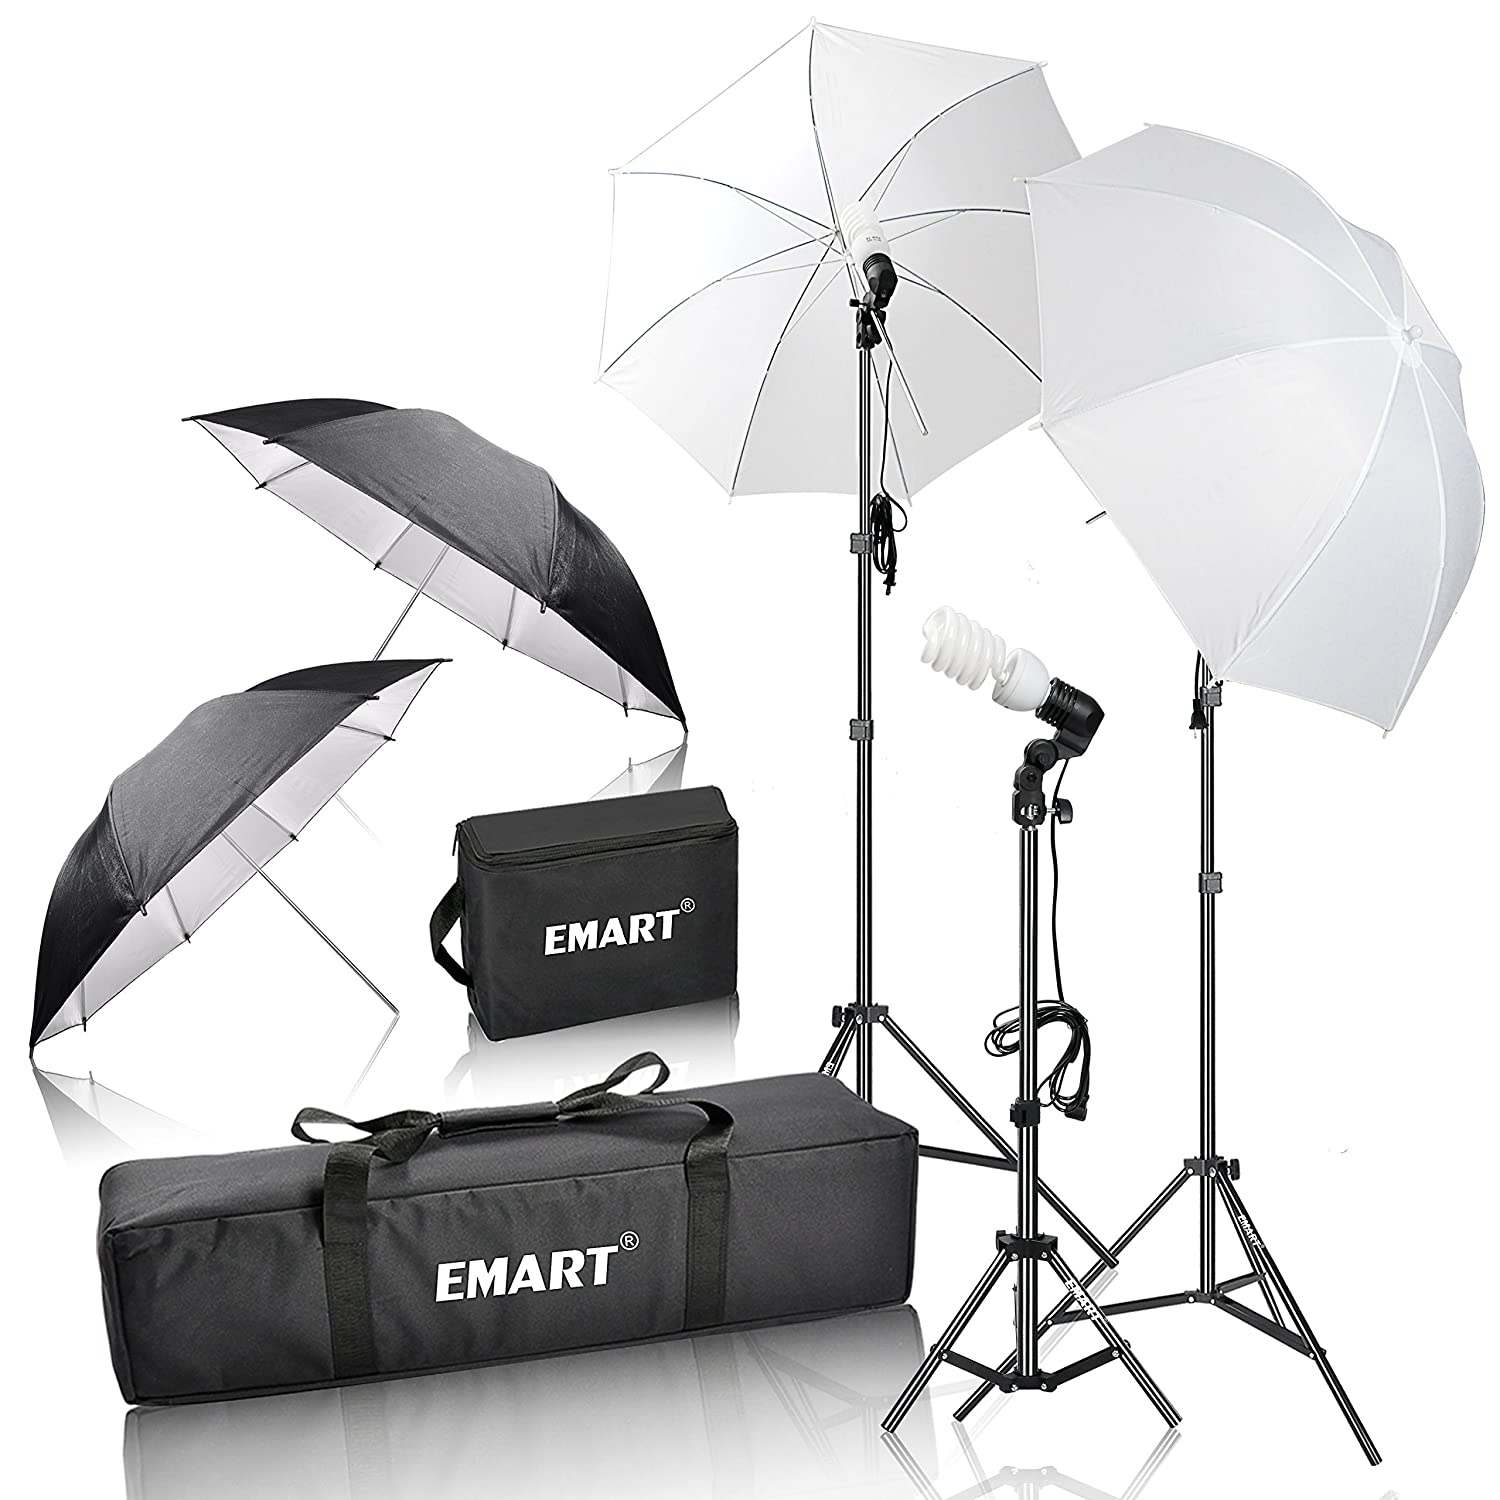 dimmable light lighting products loadstone stands photo studio carrying with continuous ring fluorescent case kit photography